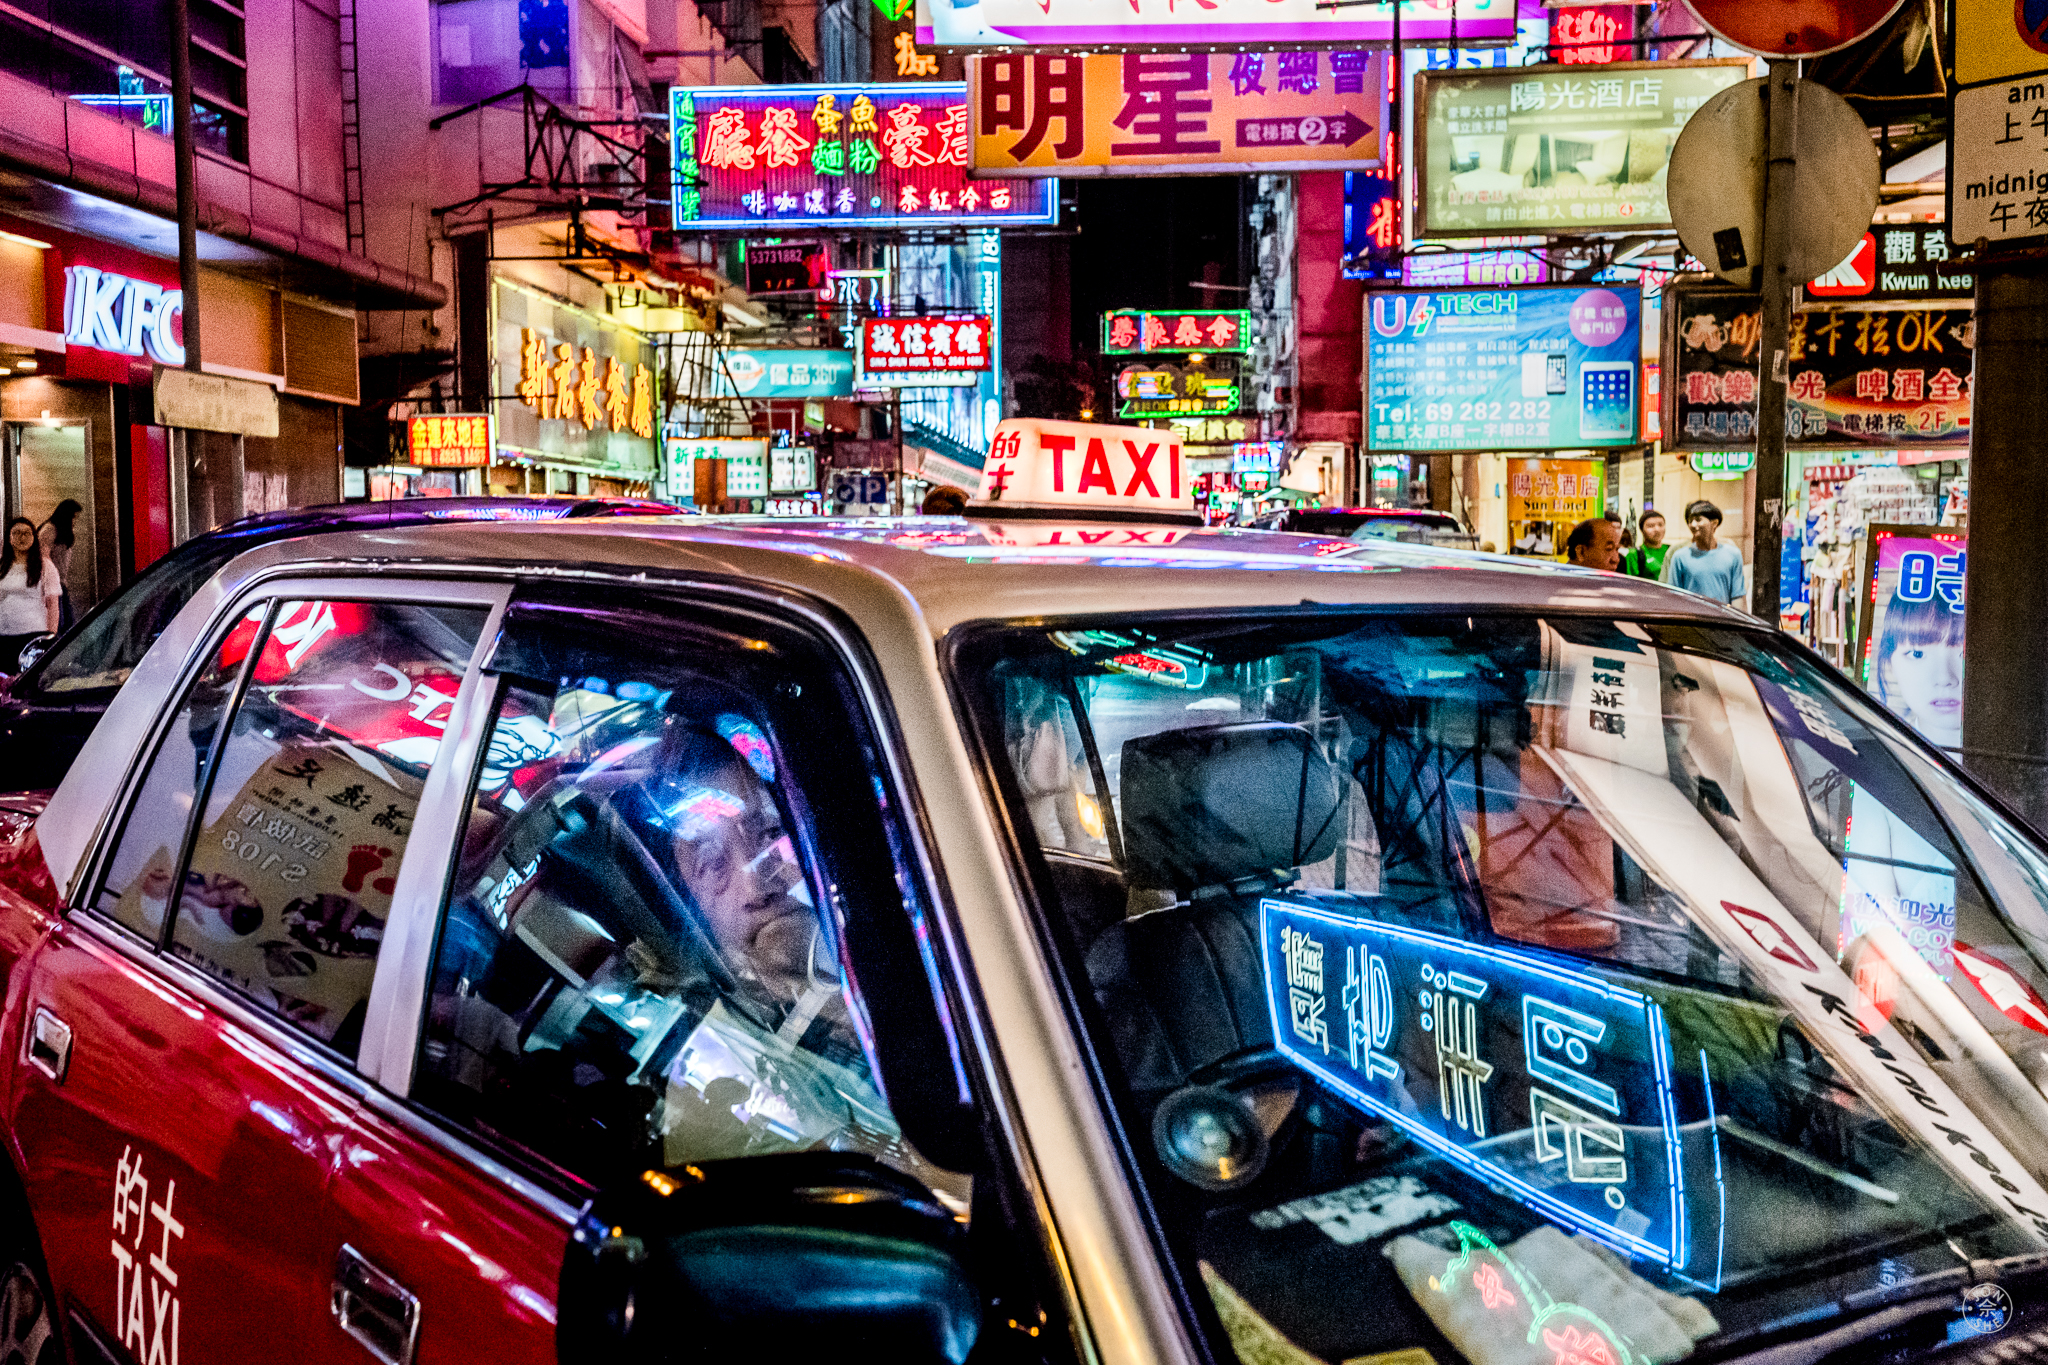 """""""Neon Taxi"""".  These red-and-white cabs are ubiquitous on the congested streets of the city, and along with the trams an iconic element of the supercity.I tried to capture as many iconic HK elements as I could in this one picture by getting up close to the vehicles in the foreground, and having the neon signages in the background and also on the windshield. Leica SL (Typ 601), Leica Summilux-M 35mm f/1.4 Aspherical. Kowloon, Hong Kong, China. July 2016. © Jon She."""